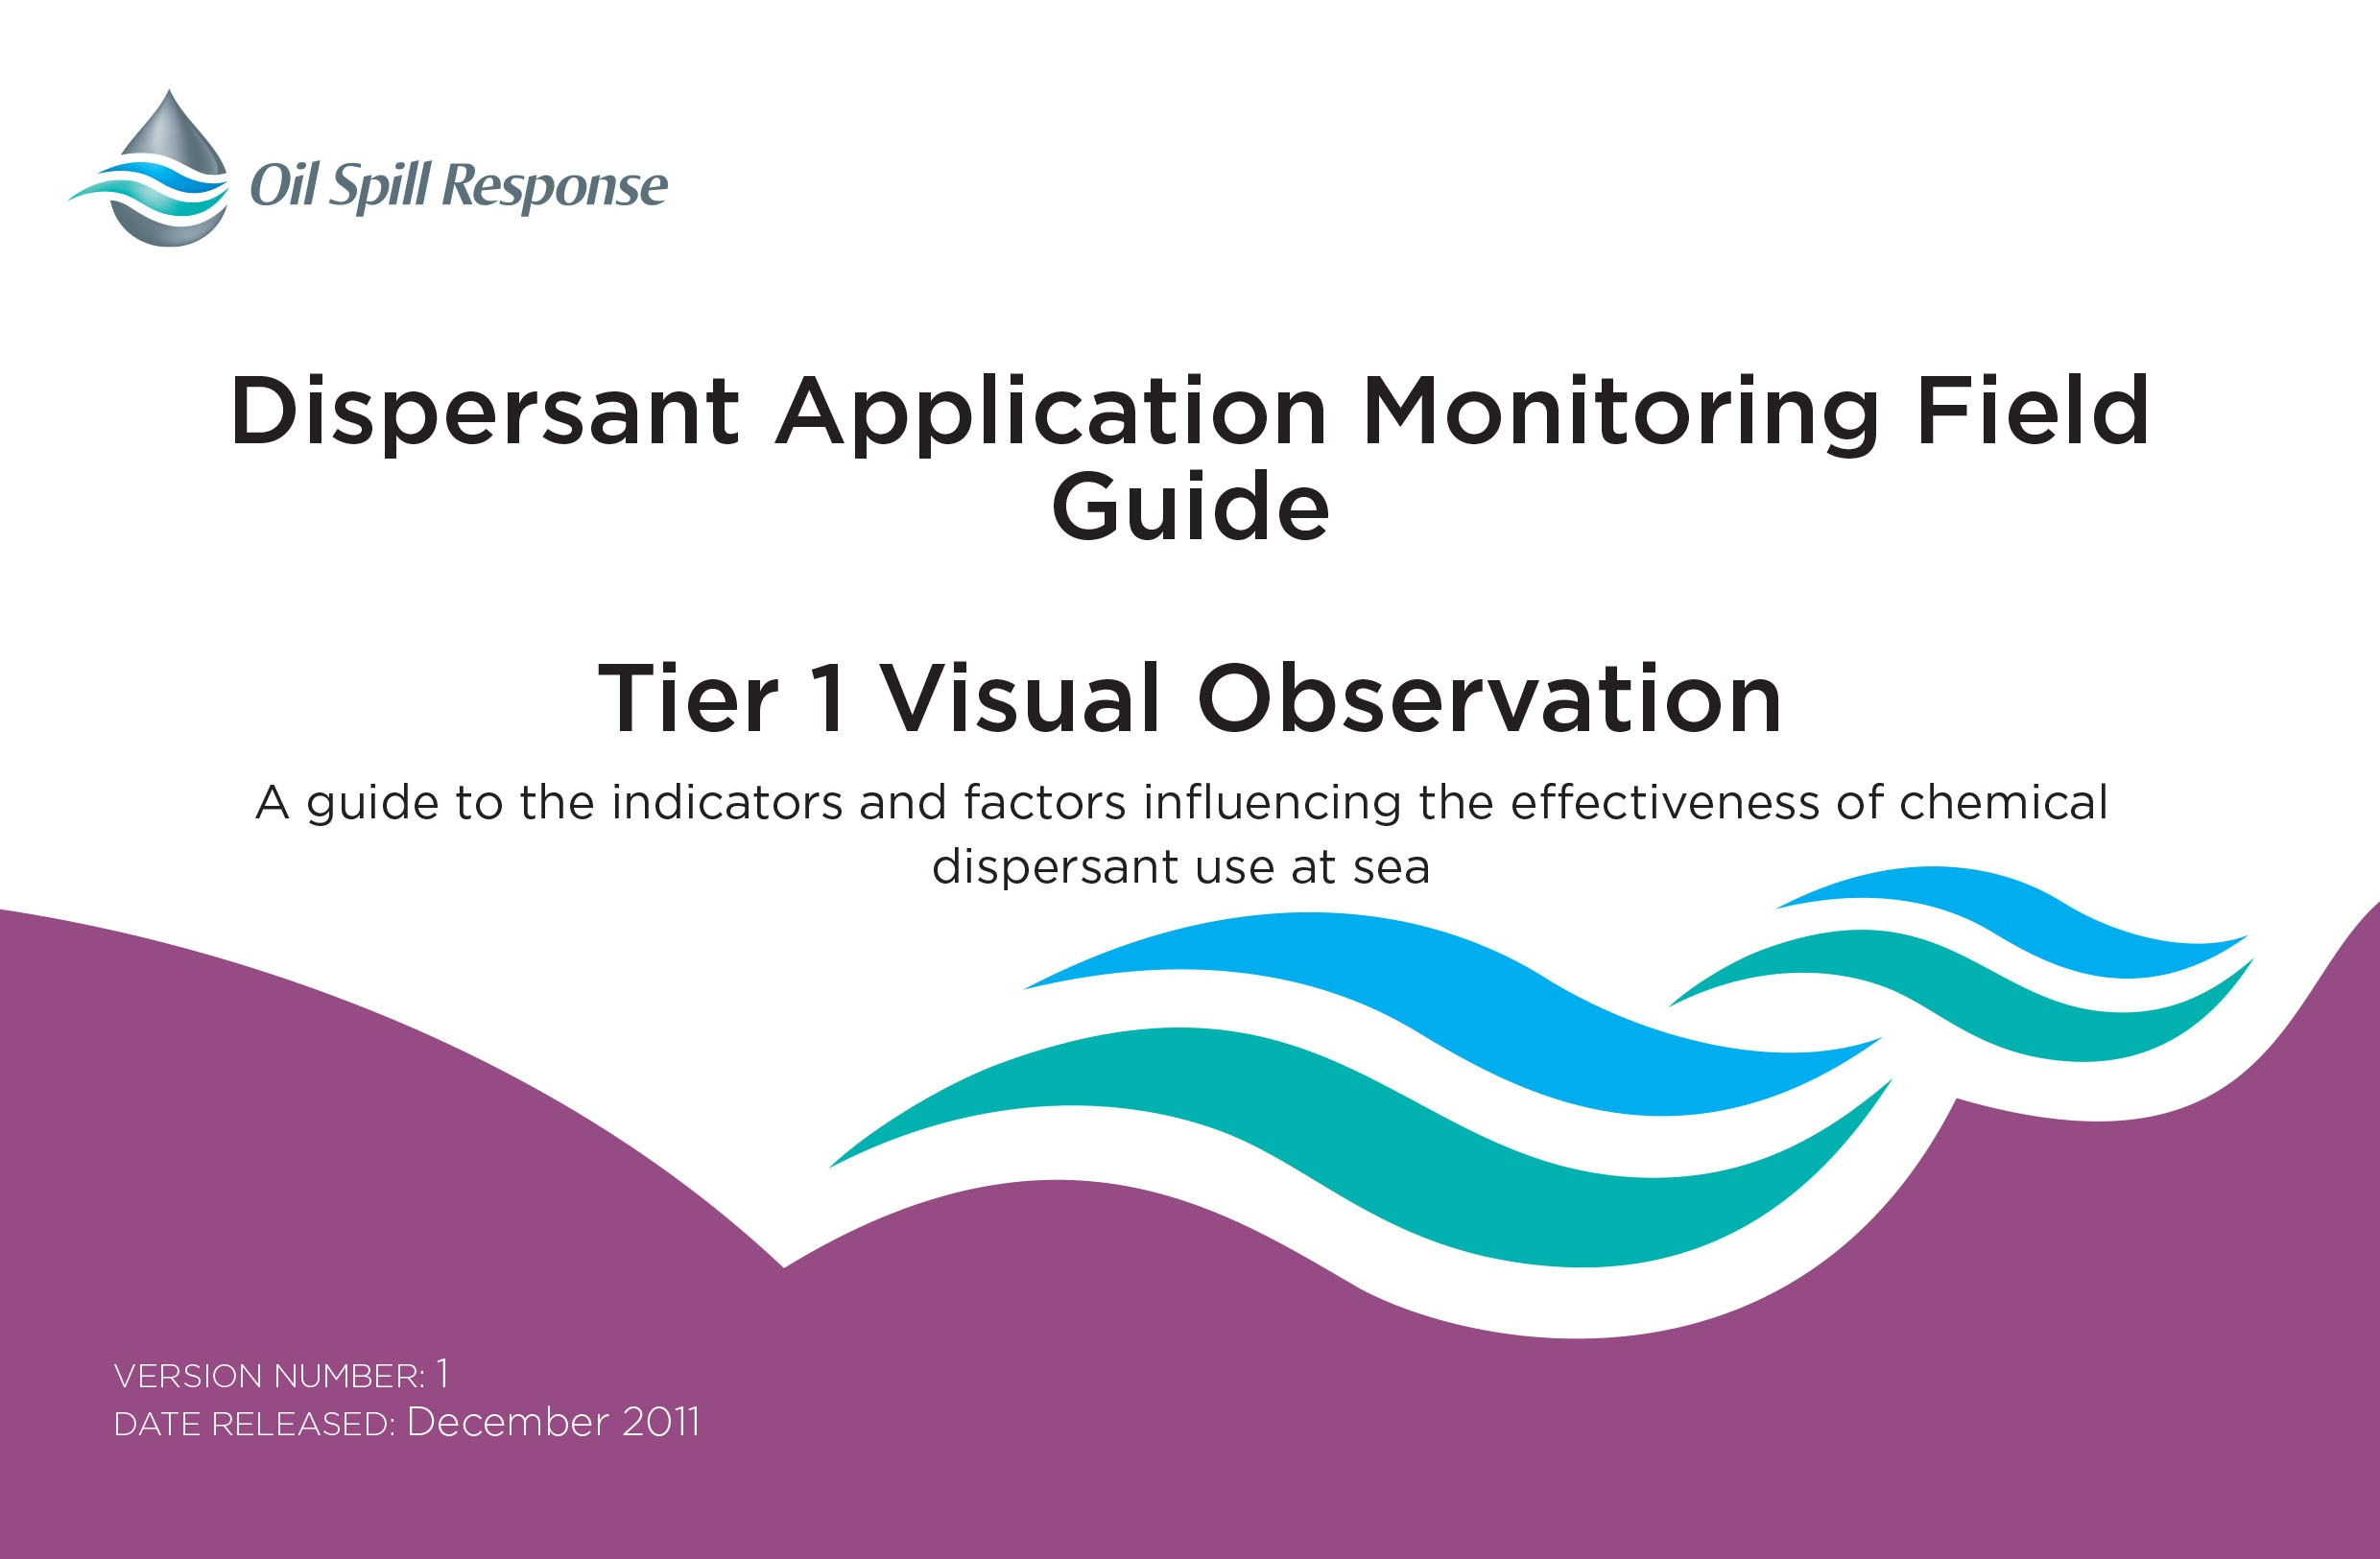 Dispersant Application Monitoring Field Guide - Tier I Visual Observation